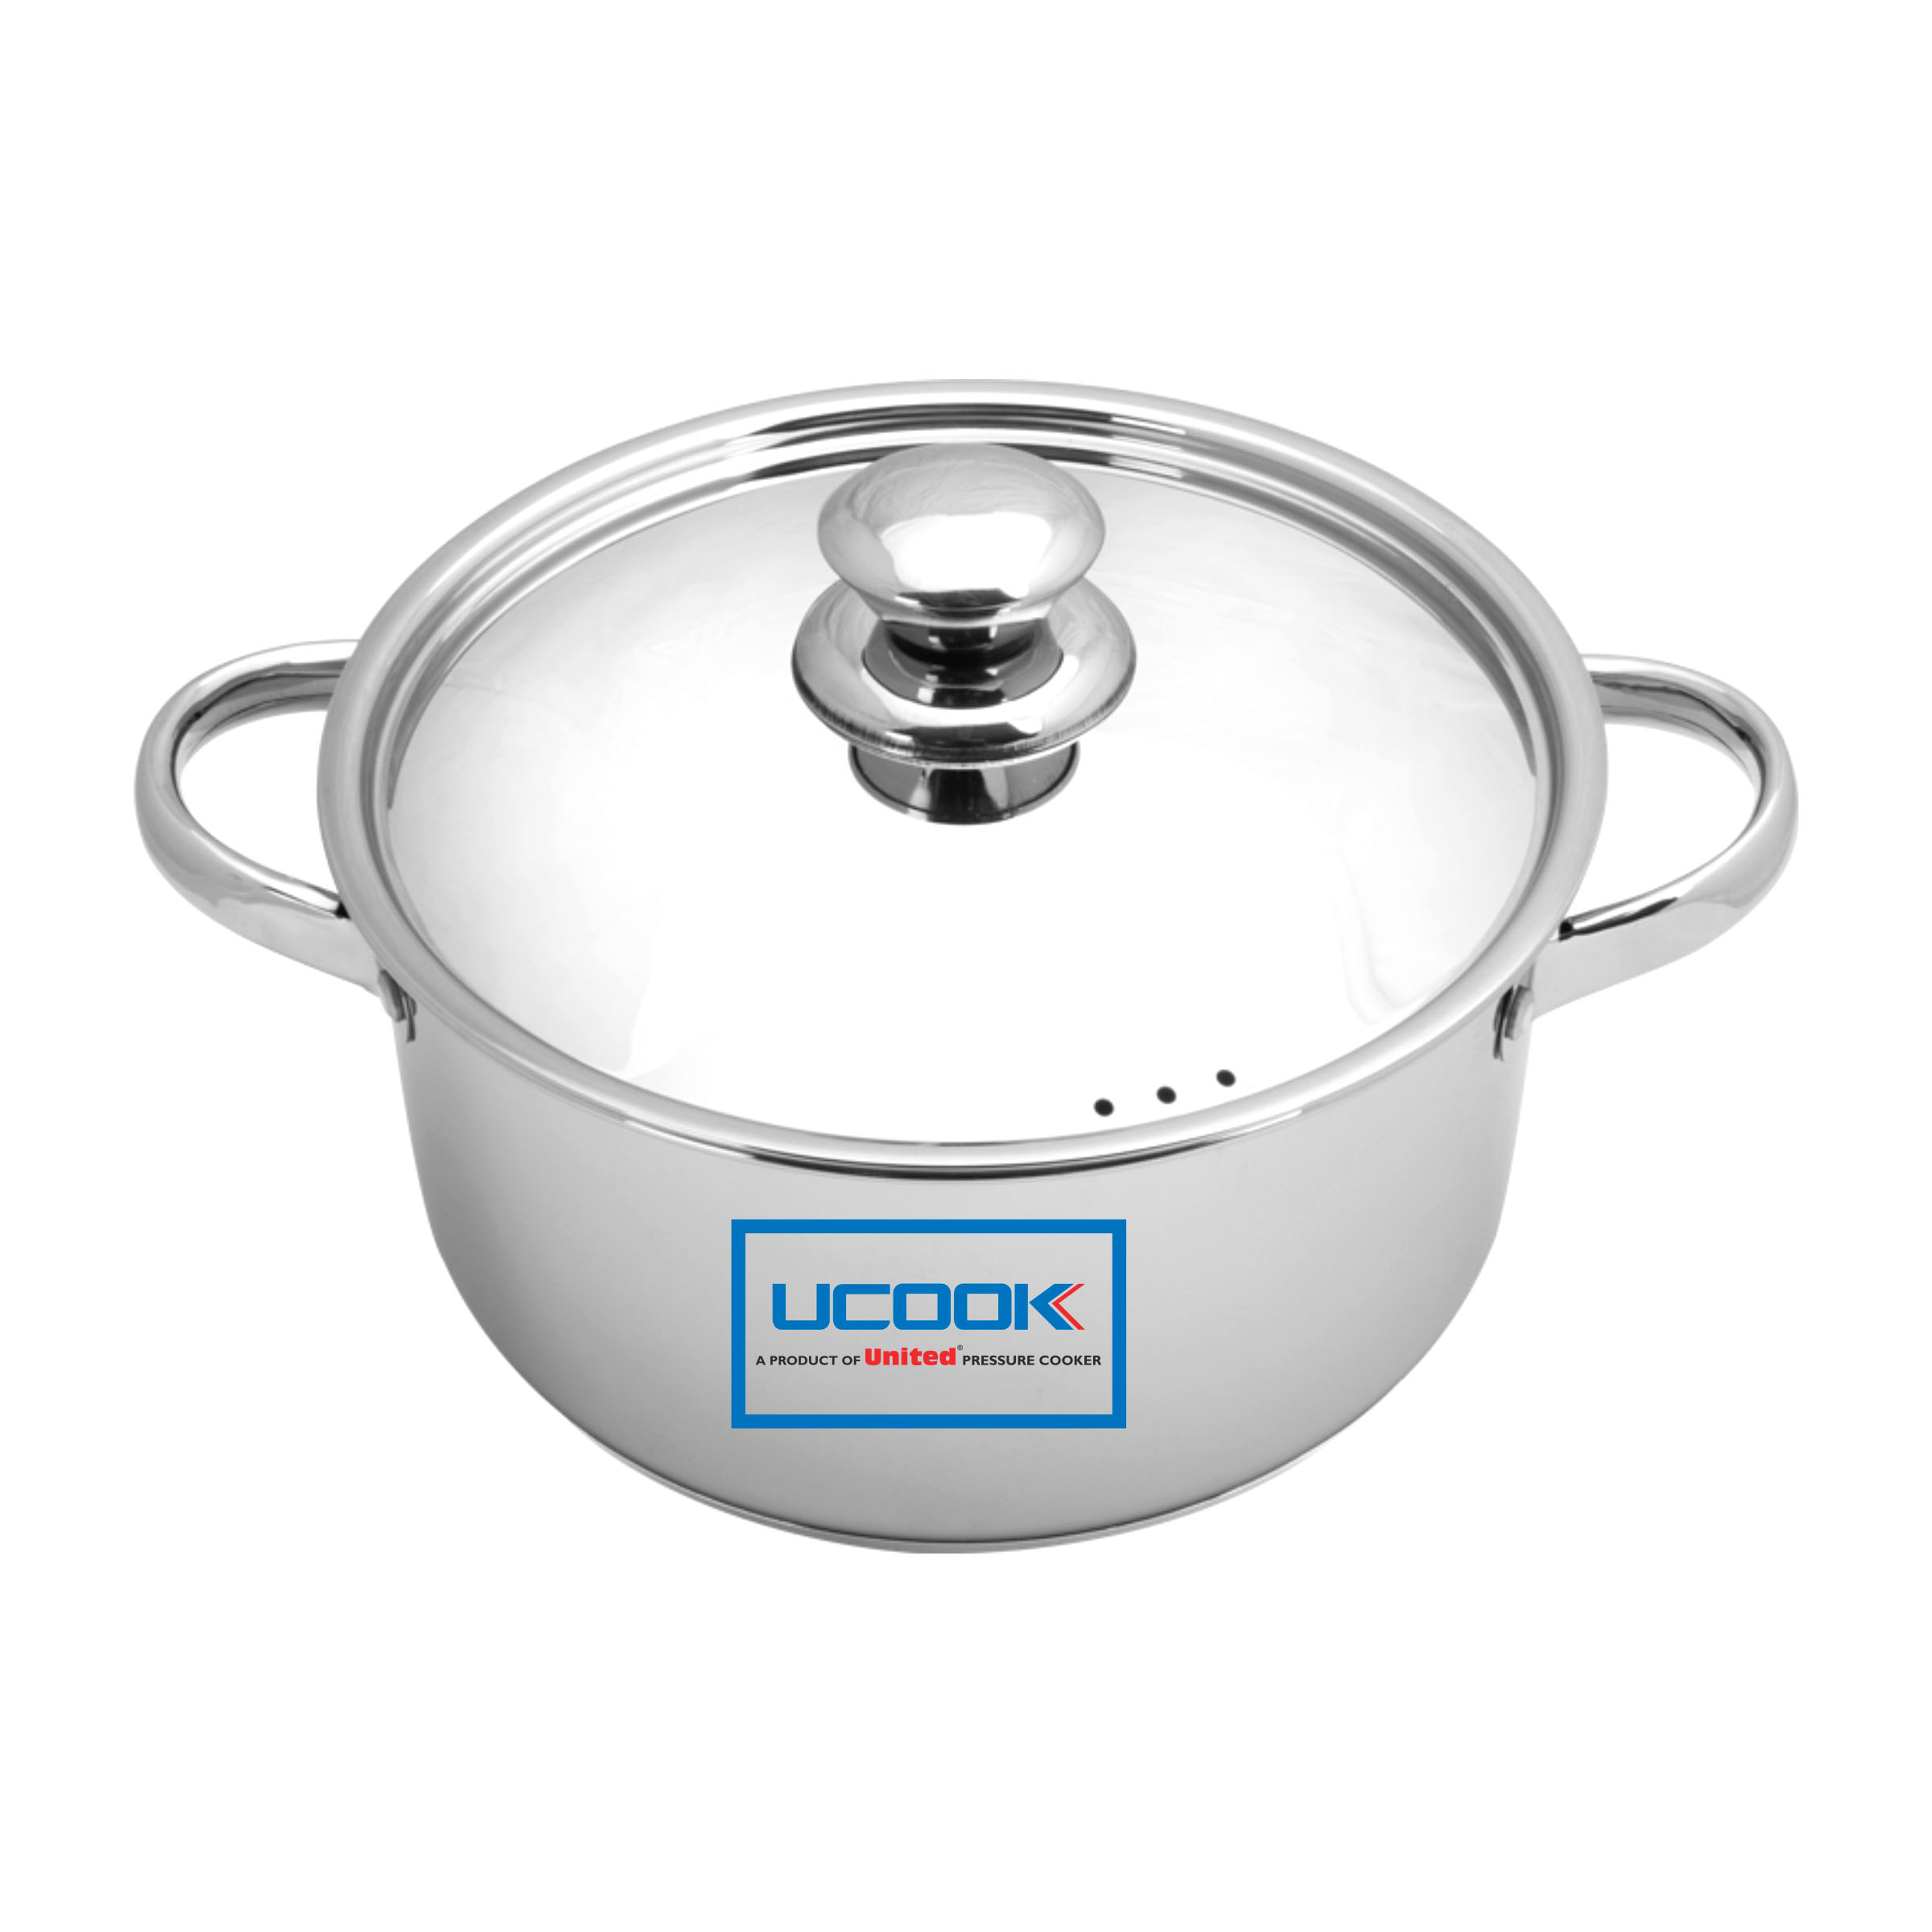 UCOOK LIFETIME CASSEROLE WITH LID 220 MM